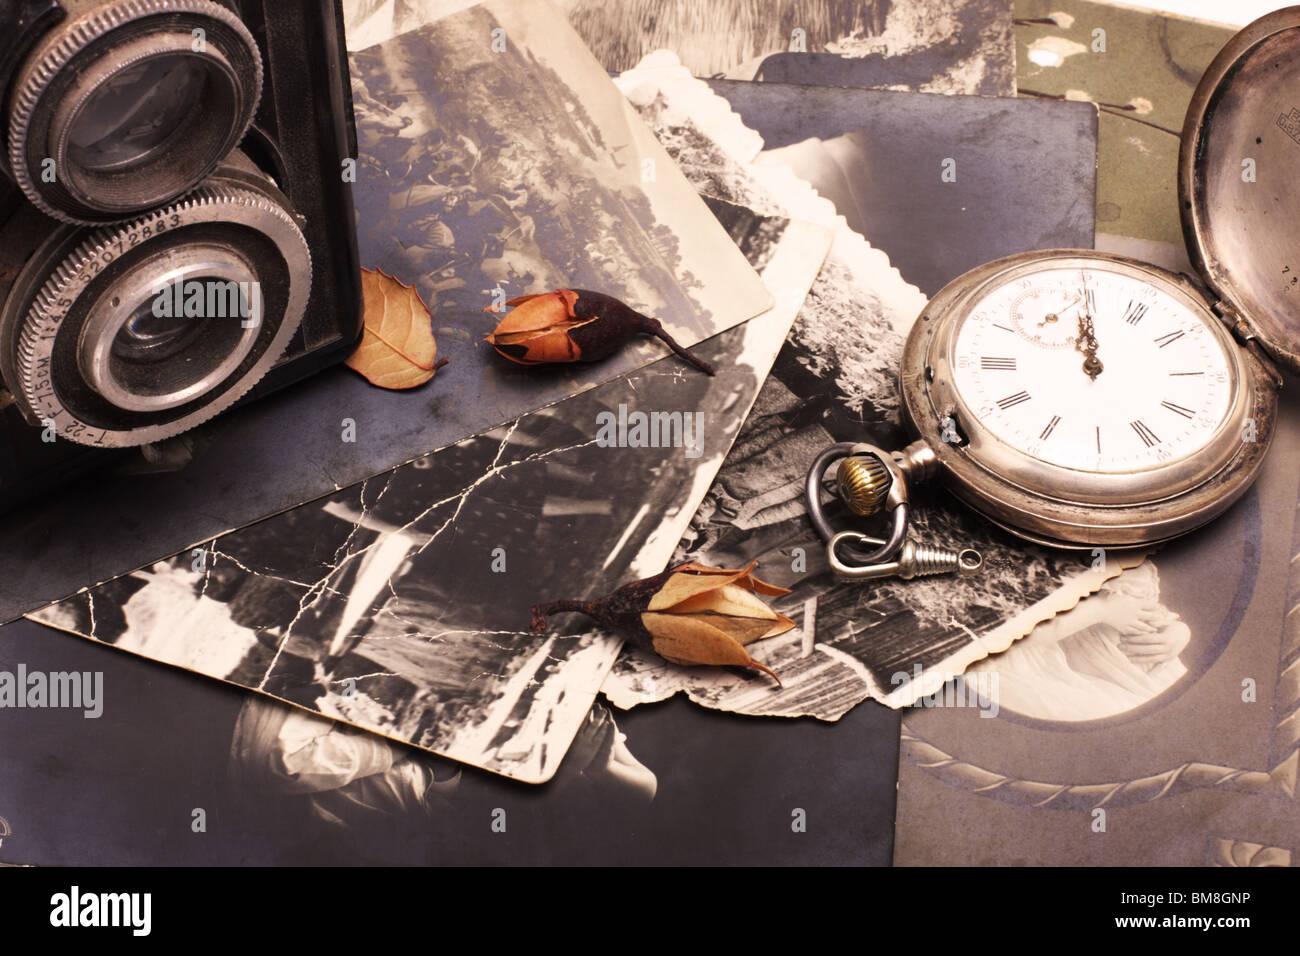 Old photo camera, old pocket watch and old photos - Stock Image